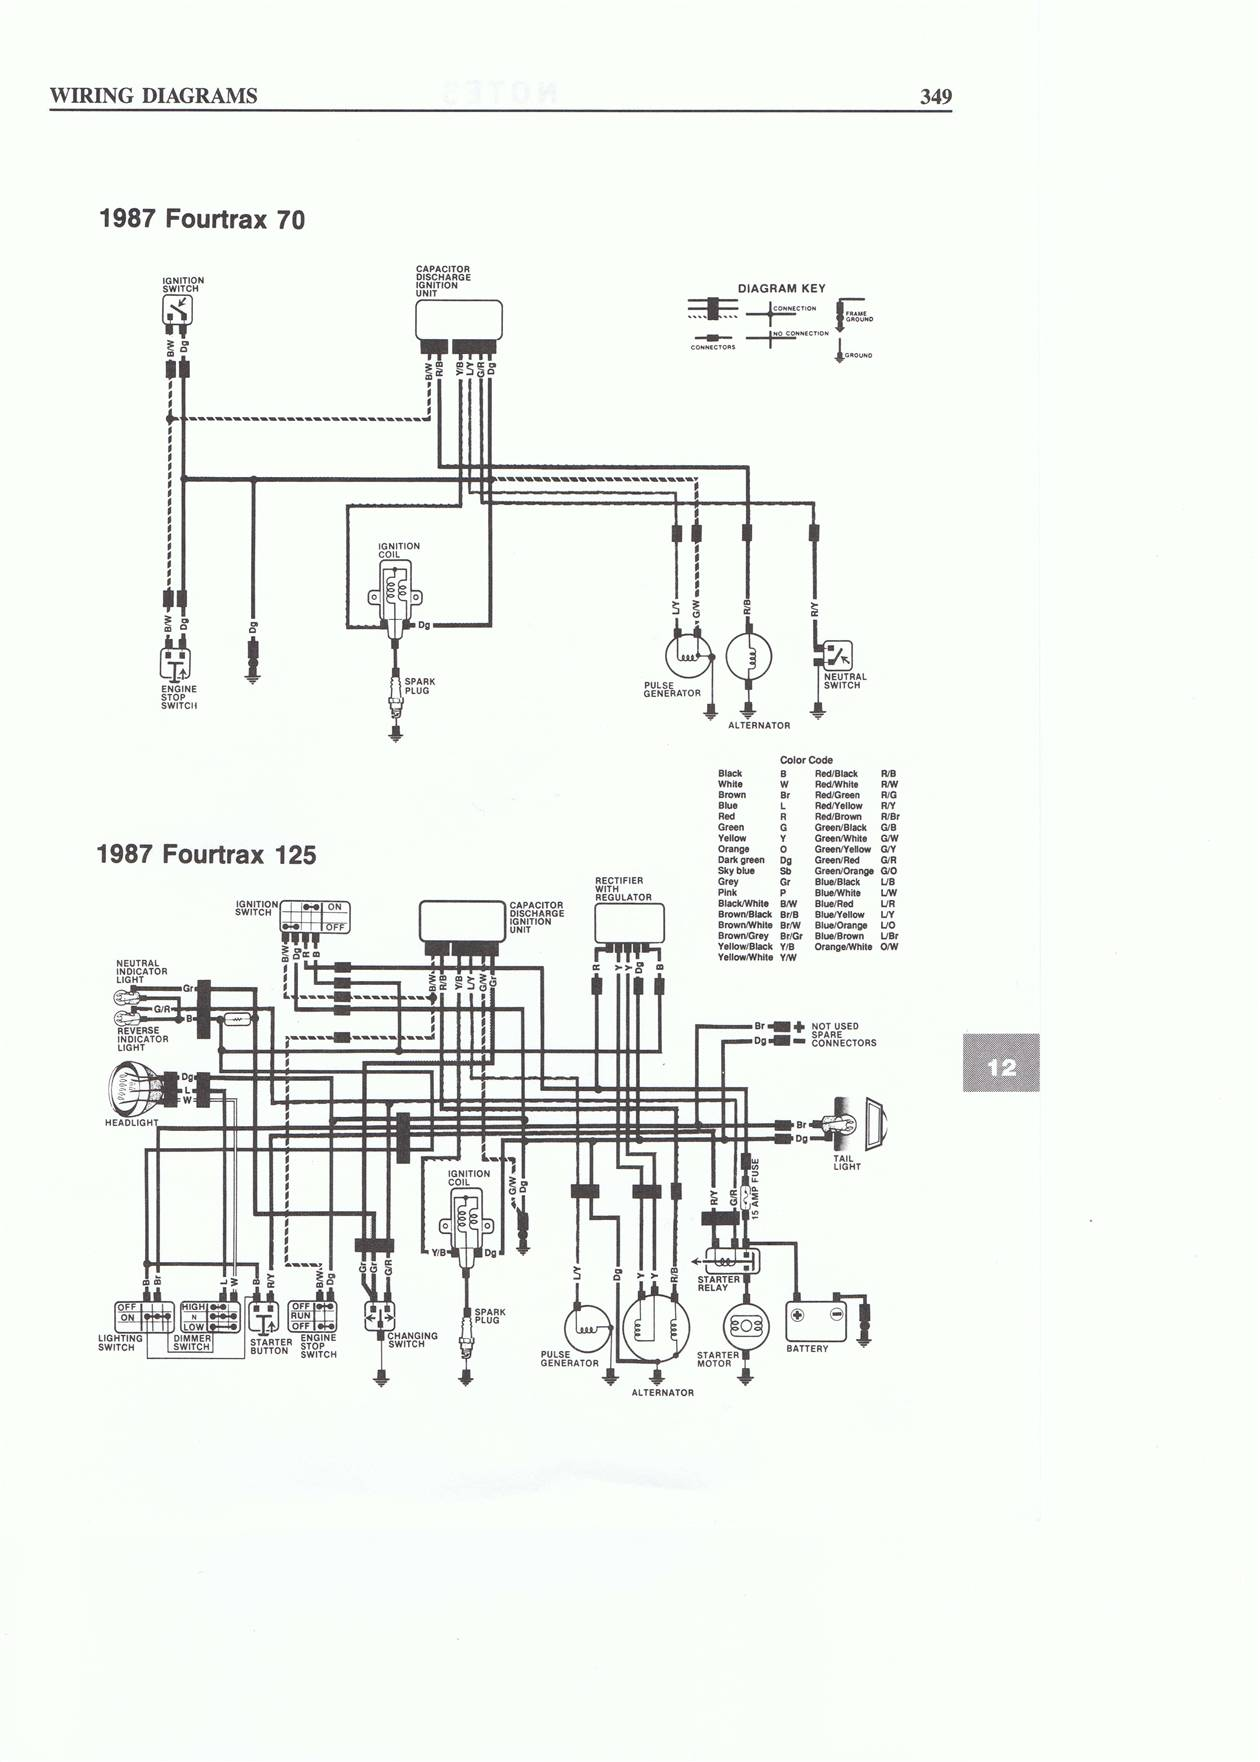 E22 Engine Chinese Engine Manuals Wiring Diagram P 9161 furthermore Gy6 Engine Wiring Diagram also Kawasaki Kx 80 Wiring Diagram as well WiringHonda moreover WiringYamaha. on 110cc atv engine diagram